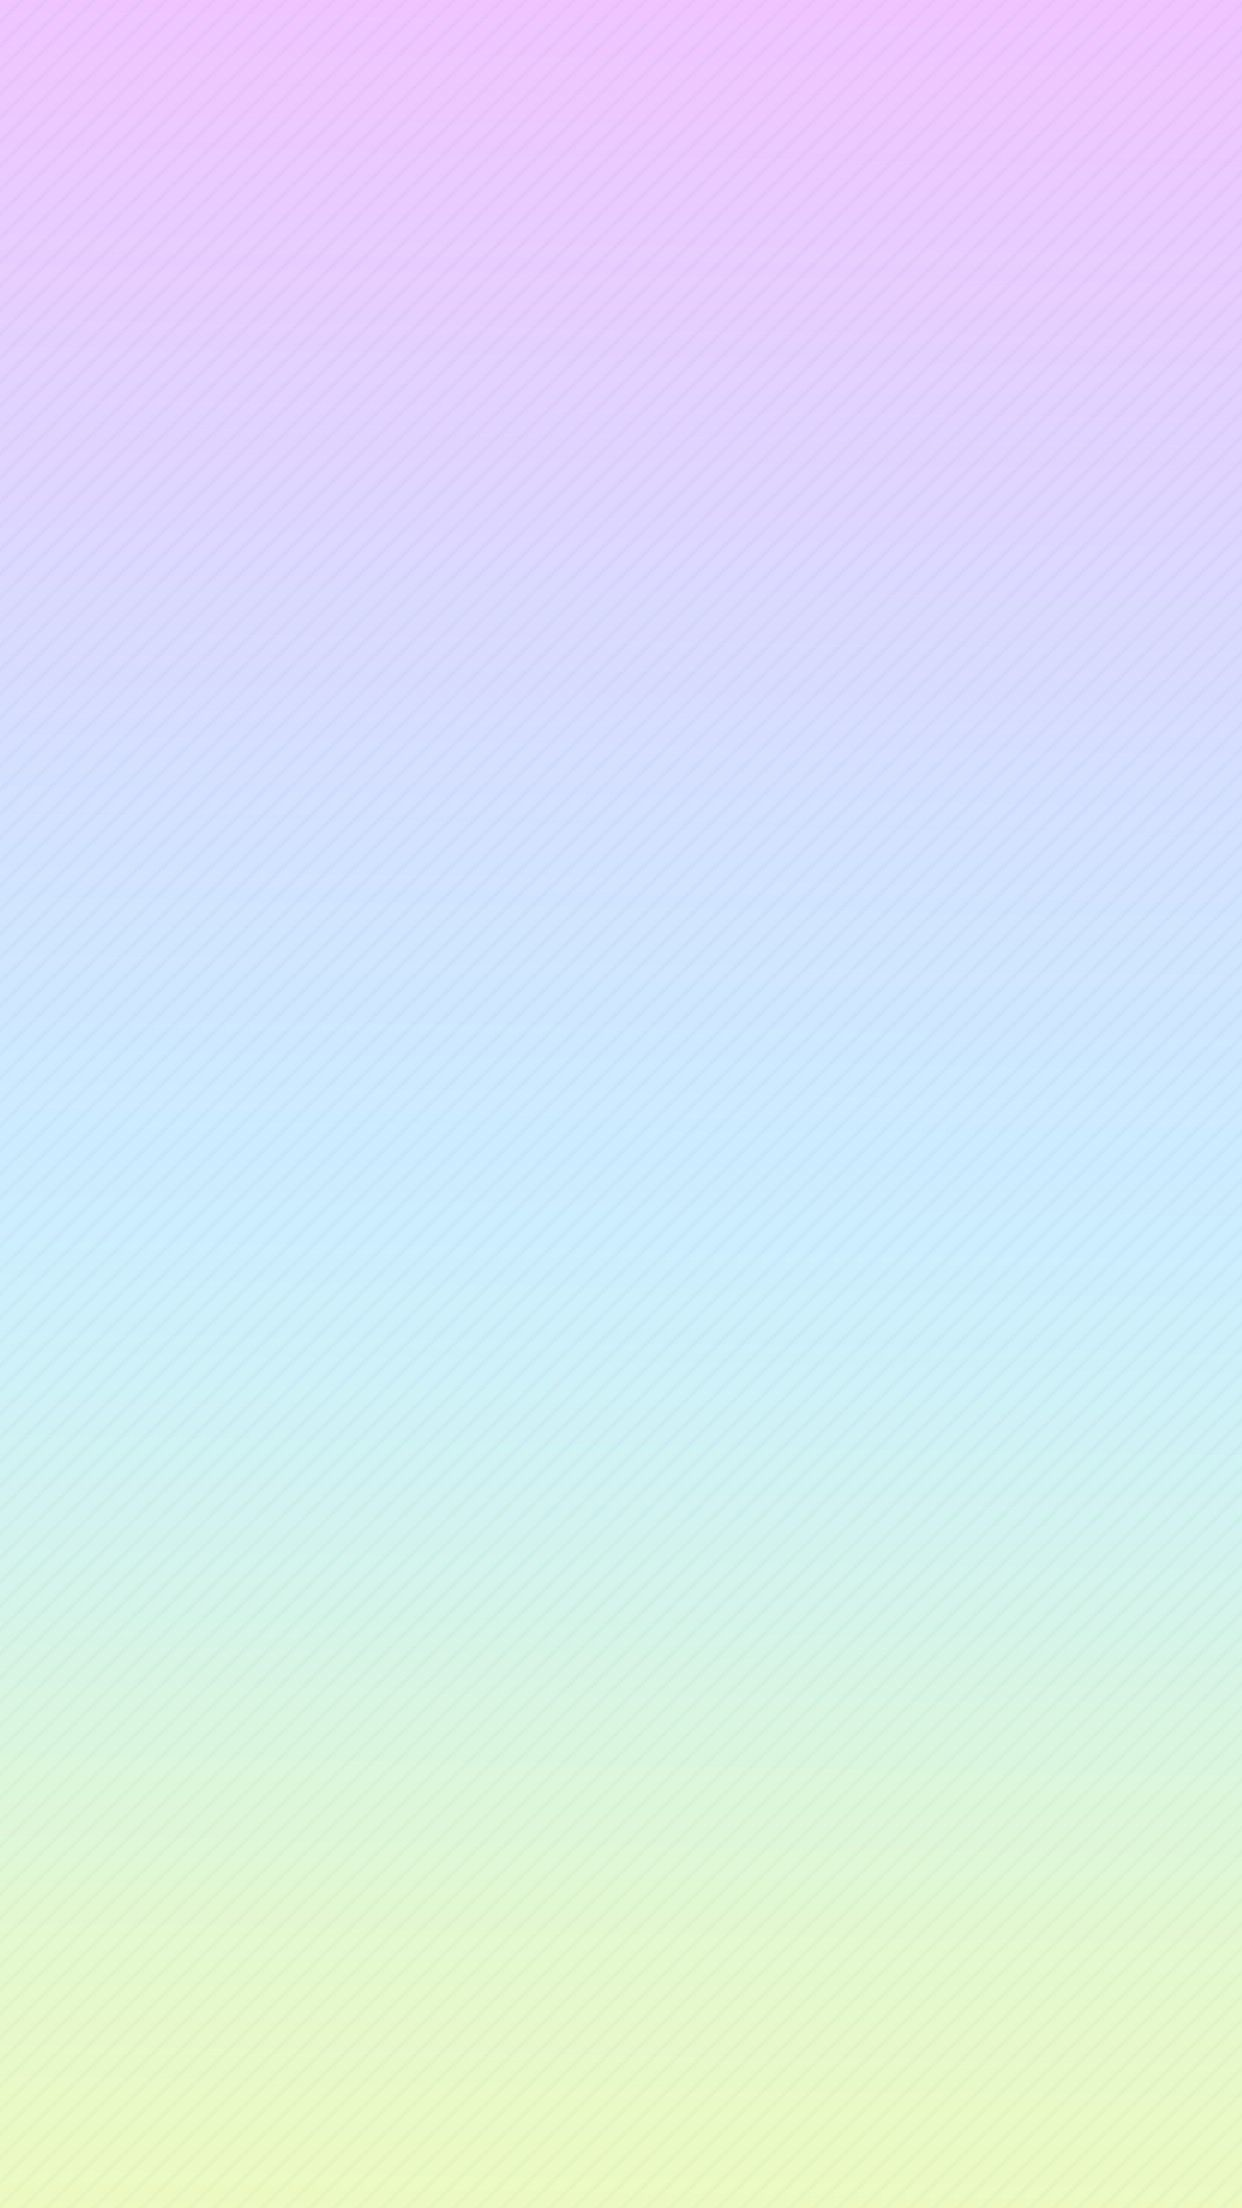 Res: 1242x2208, Wallpaper, background, iPhone, Android, HD, pink, blue, purple,